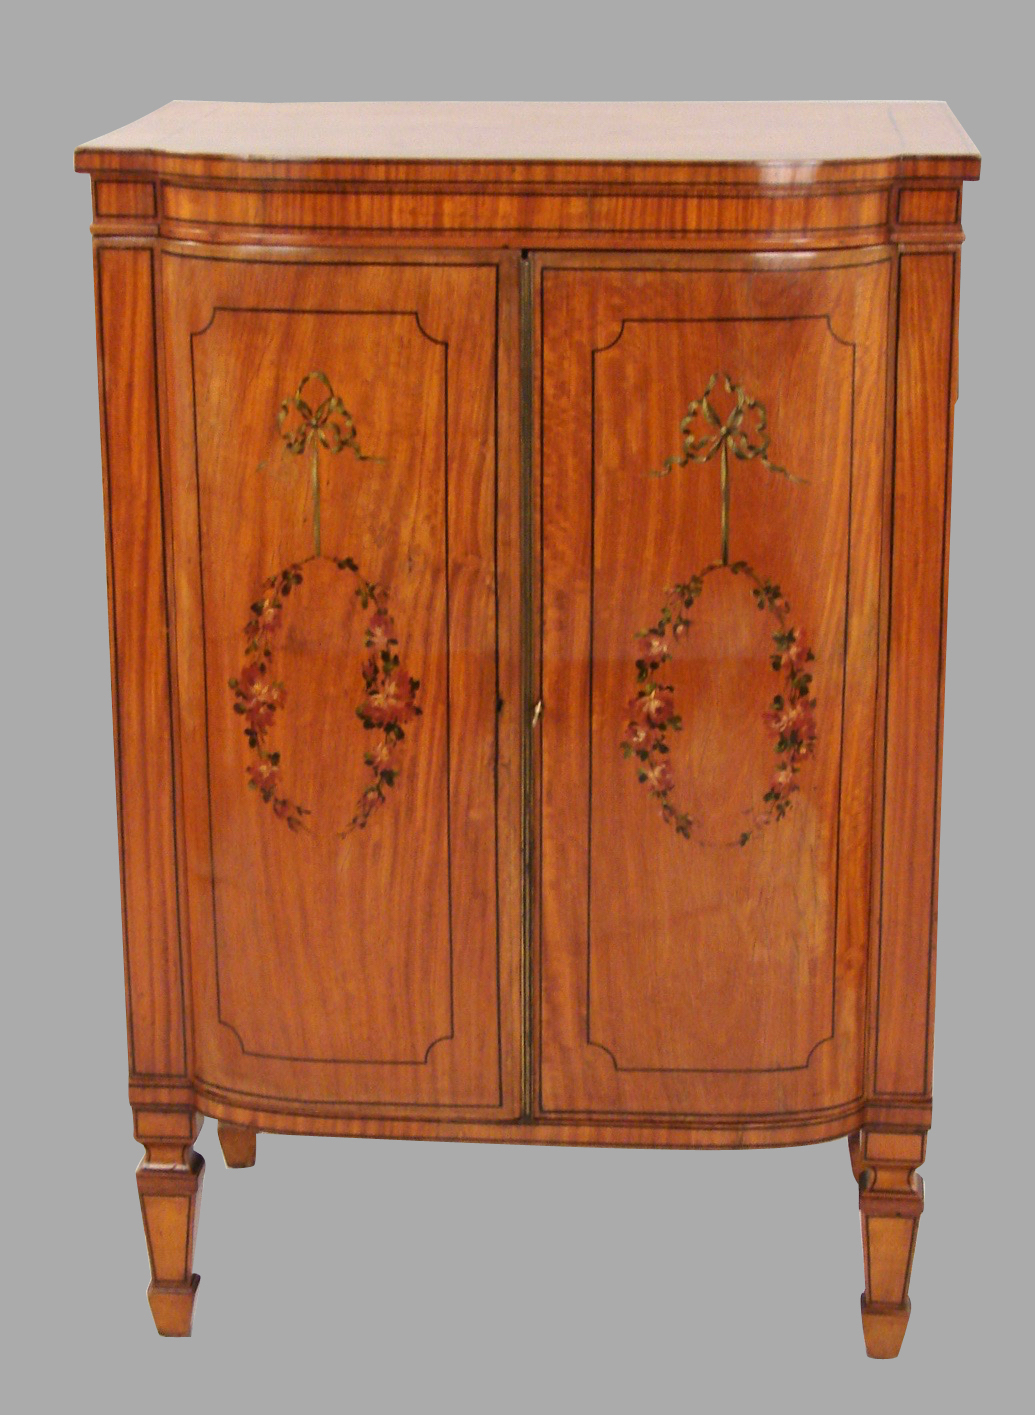 Sheraton Style Satinwood Decorated Music Cabinet | DANIEL STEIN Antiques San Francisco CA